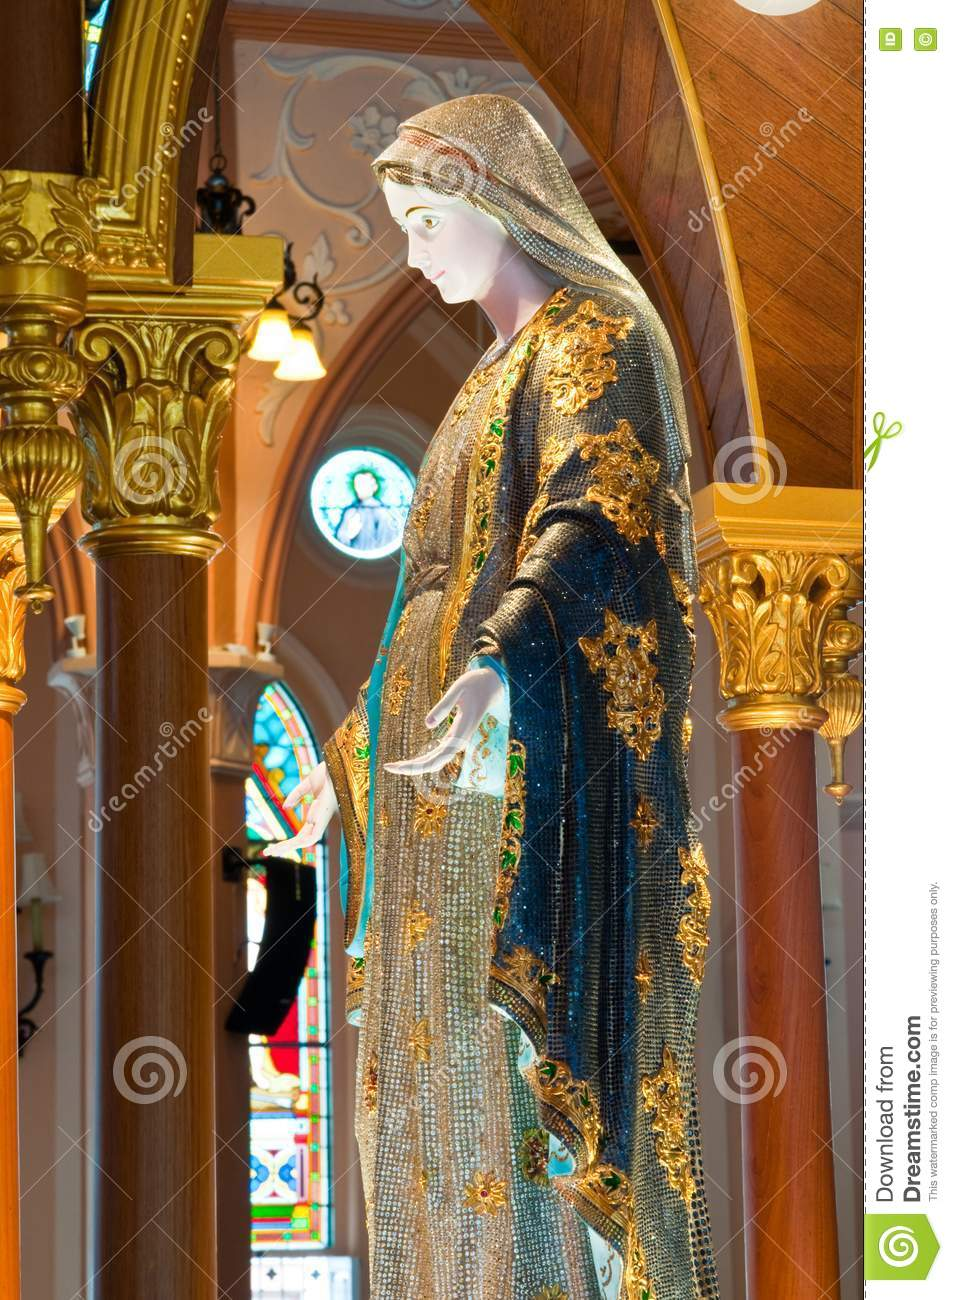 Virgin Mary Statue In The Church Royalty Free Stock Photo ...